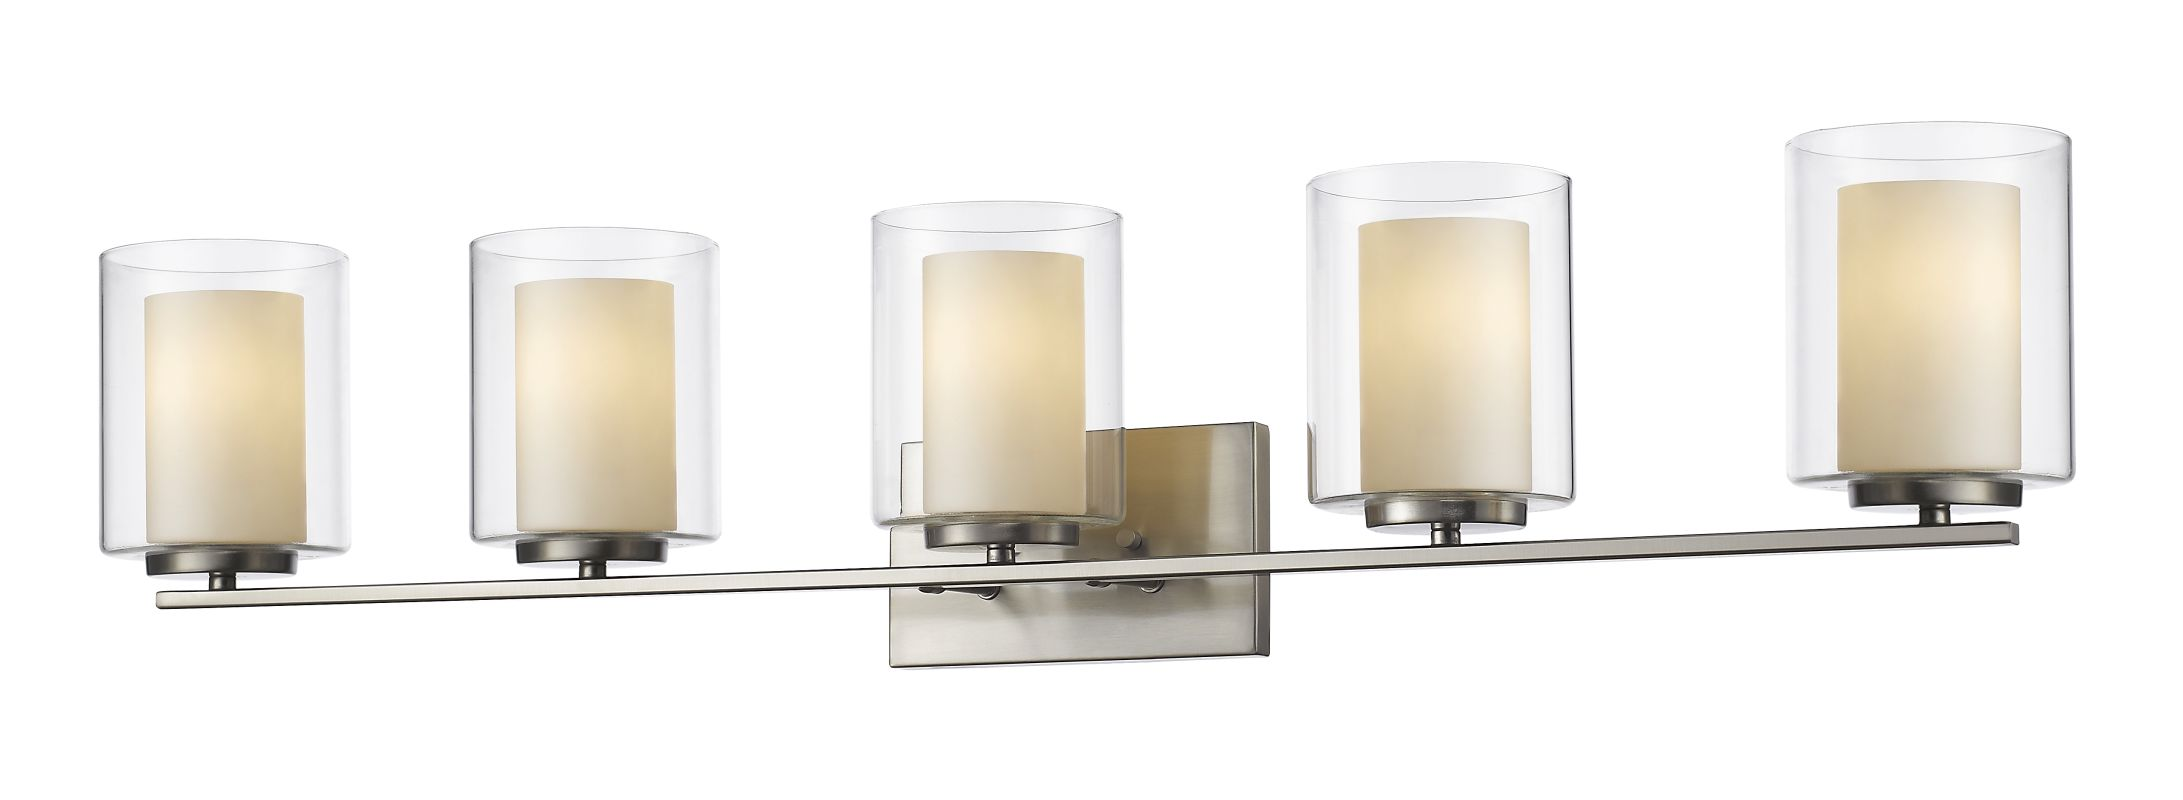 Z-Lite 426-5V Willow 5 Light Bathroom Vanity Fixture Brushed Nickel Sale $294.00 ITEM: bci2614044 ID#:426-5V-BN UPC: 685659039634 :